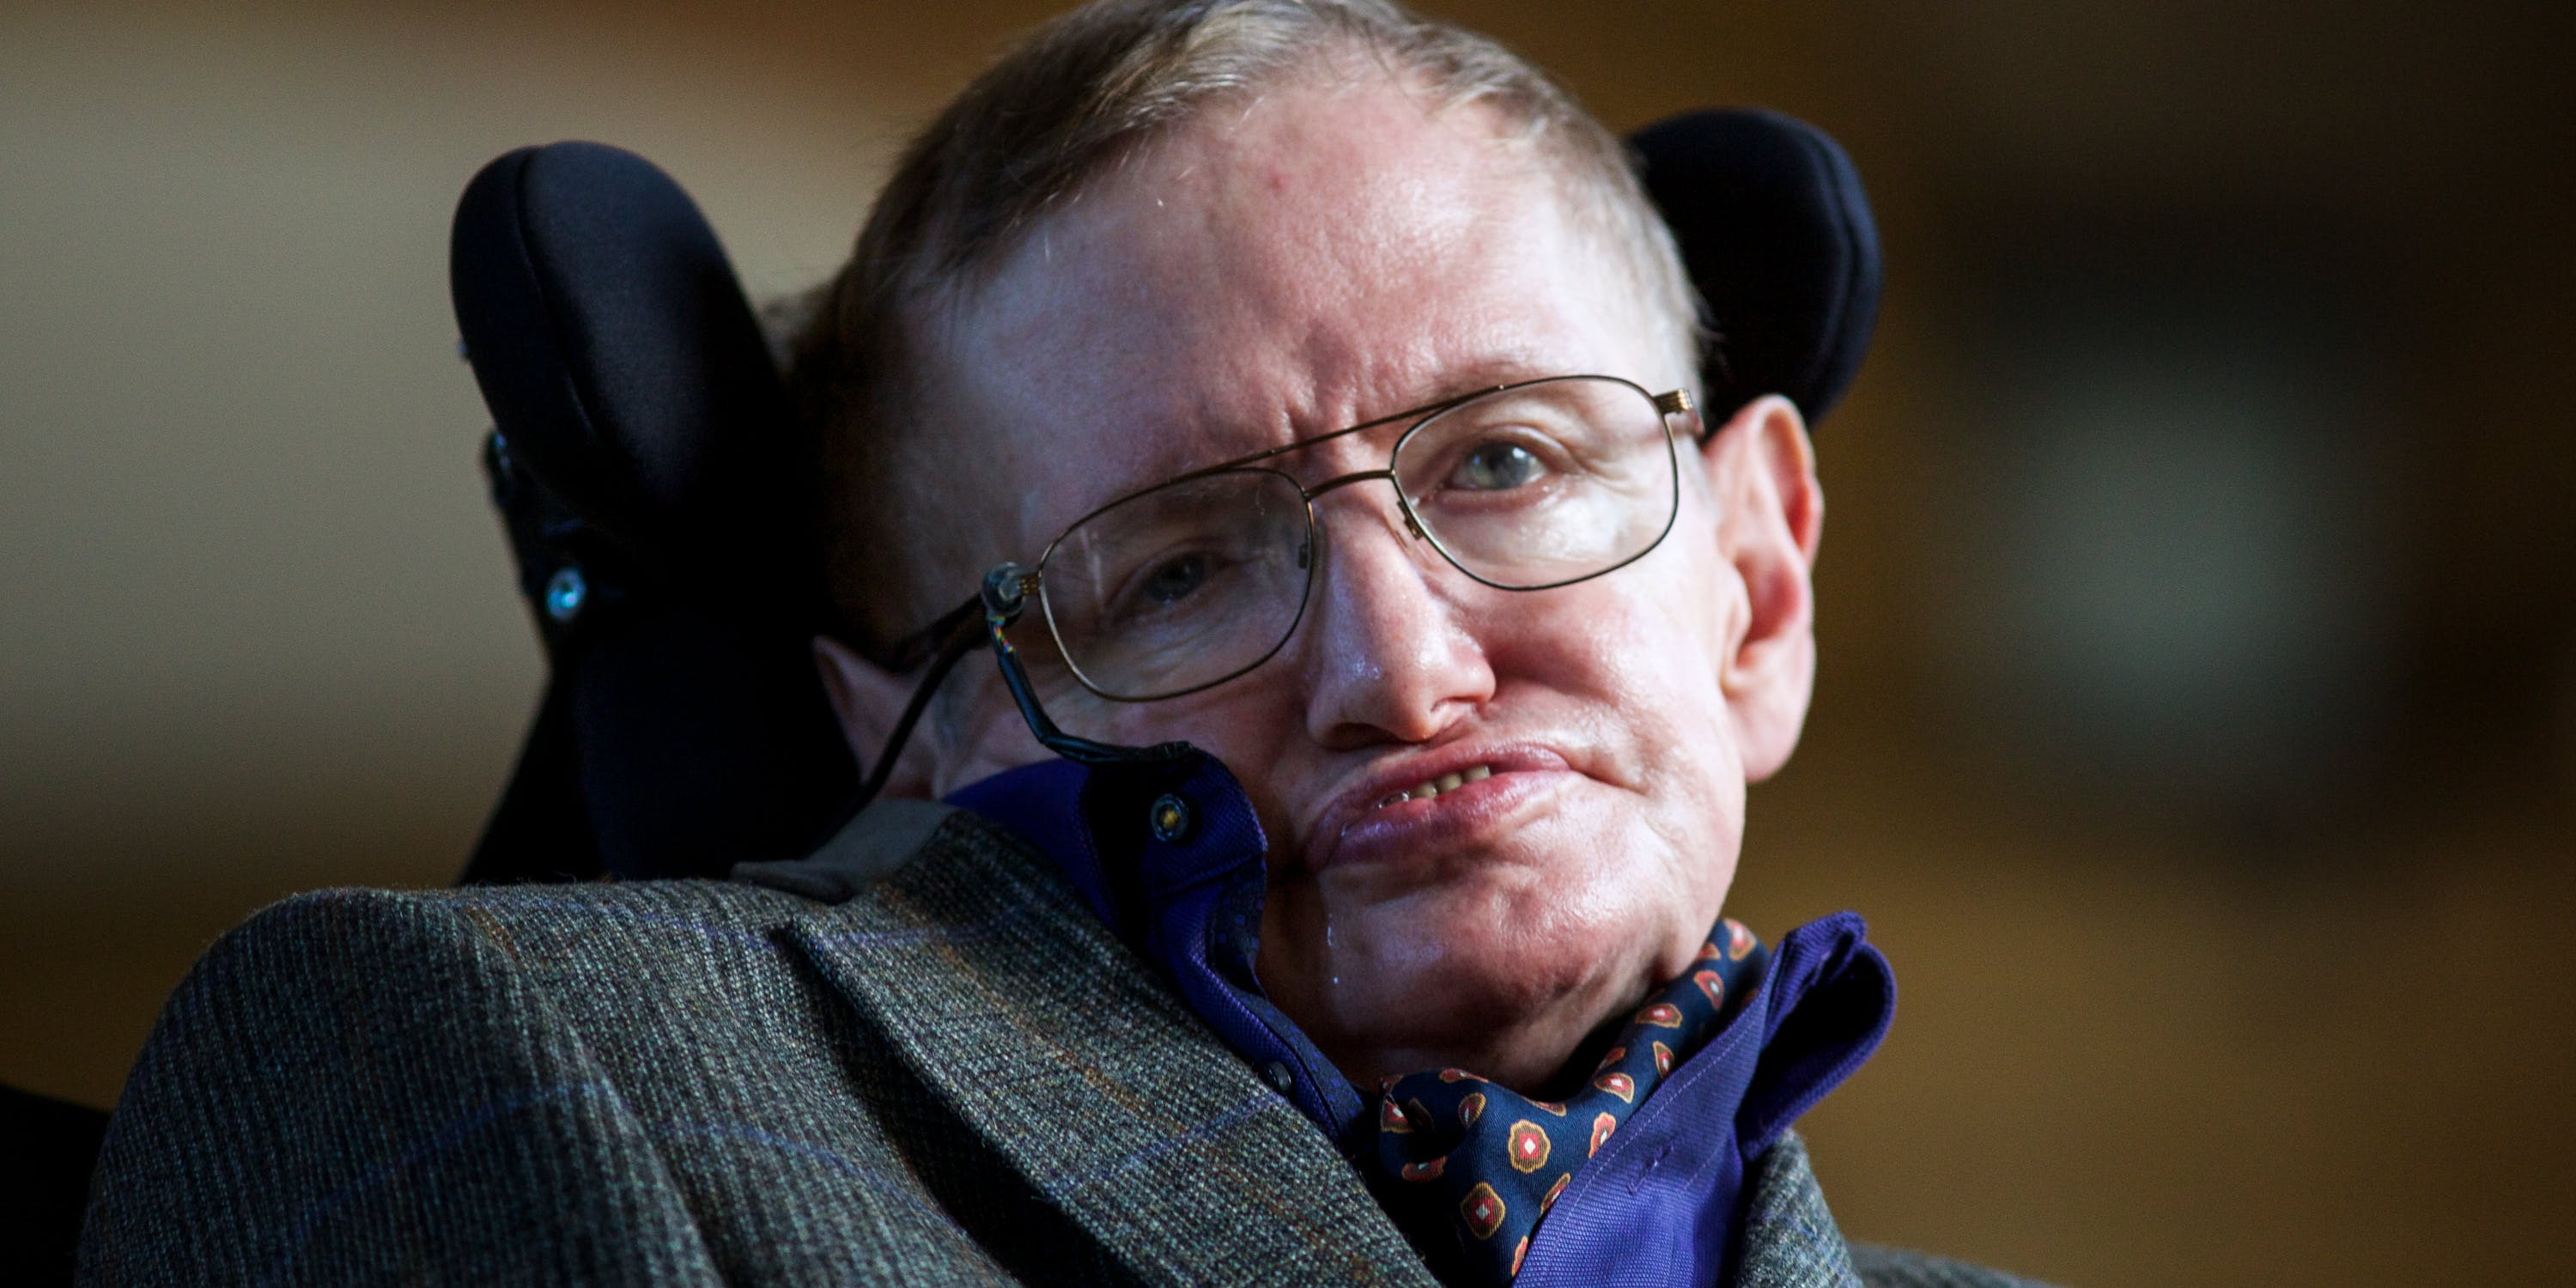 Stephen Hawking —Visionary Physicist—Dies at 76 in Cambridge